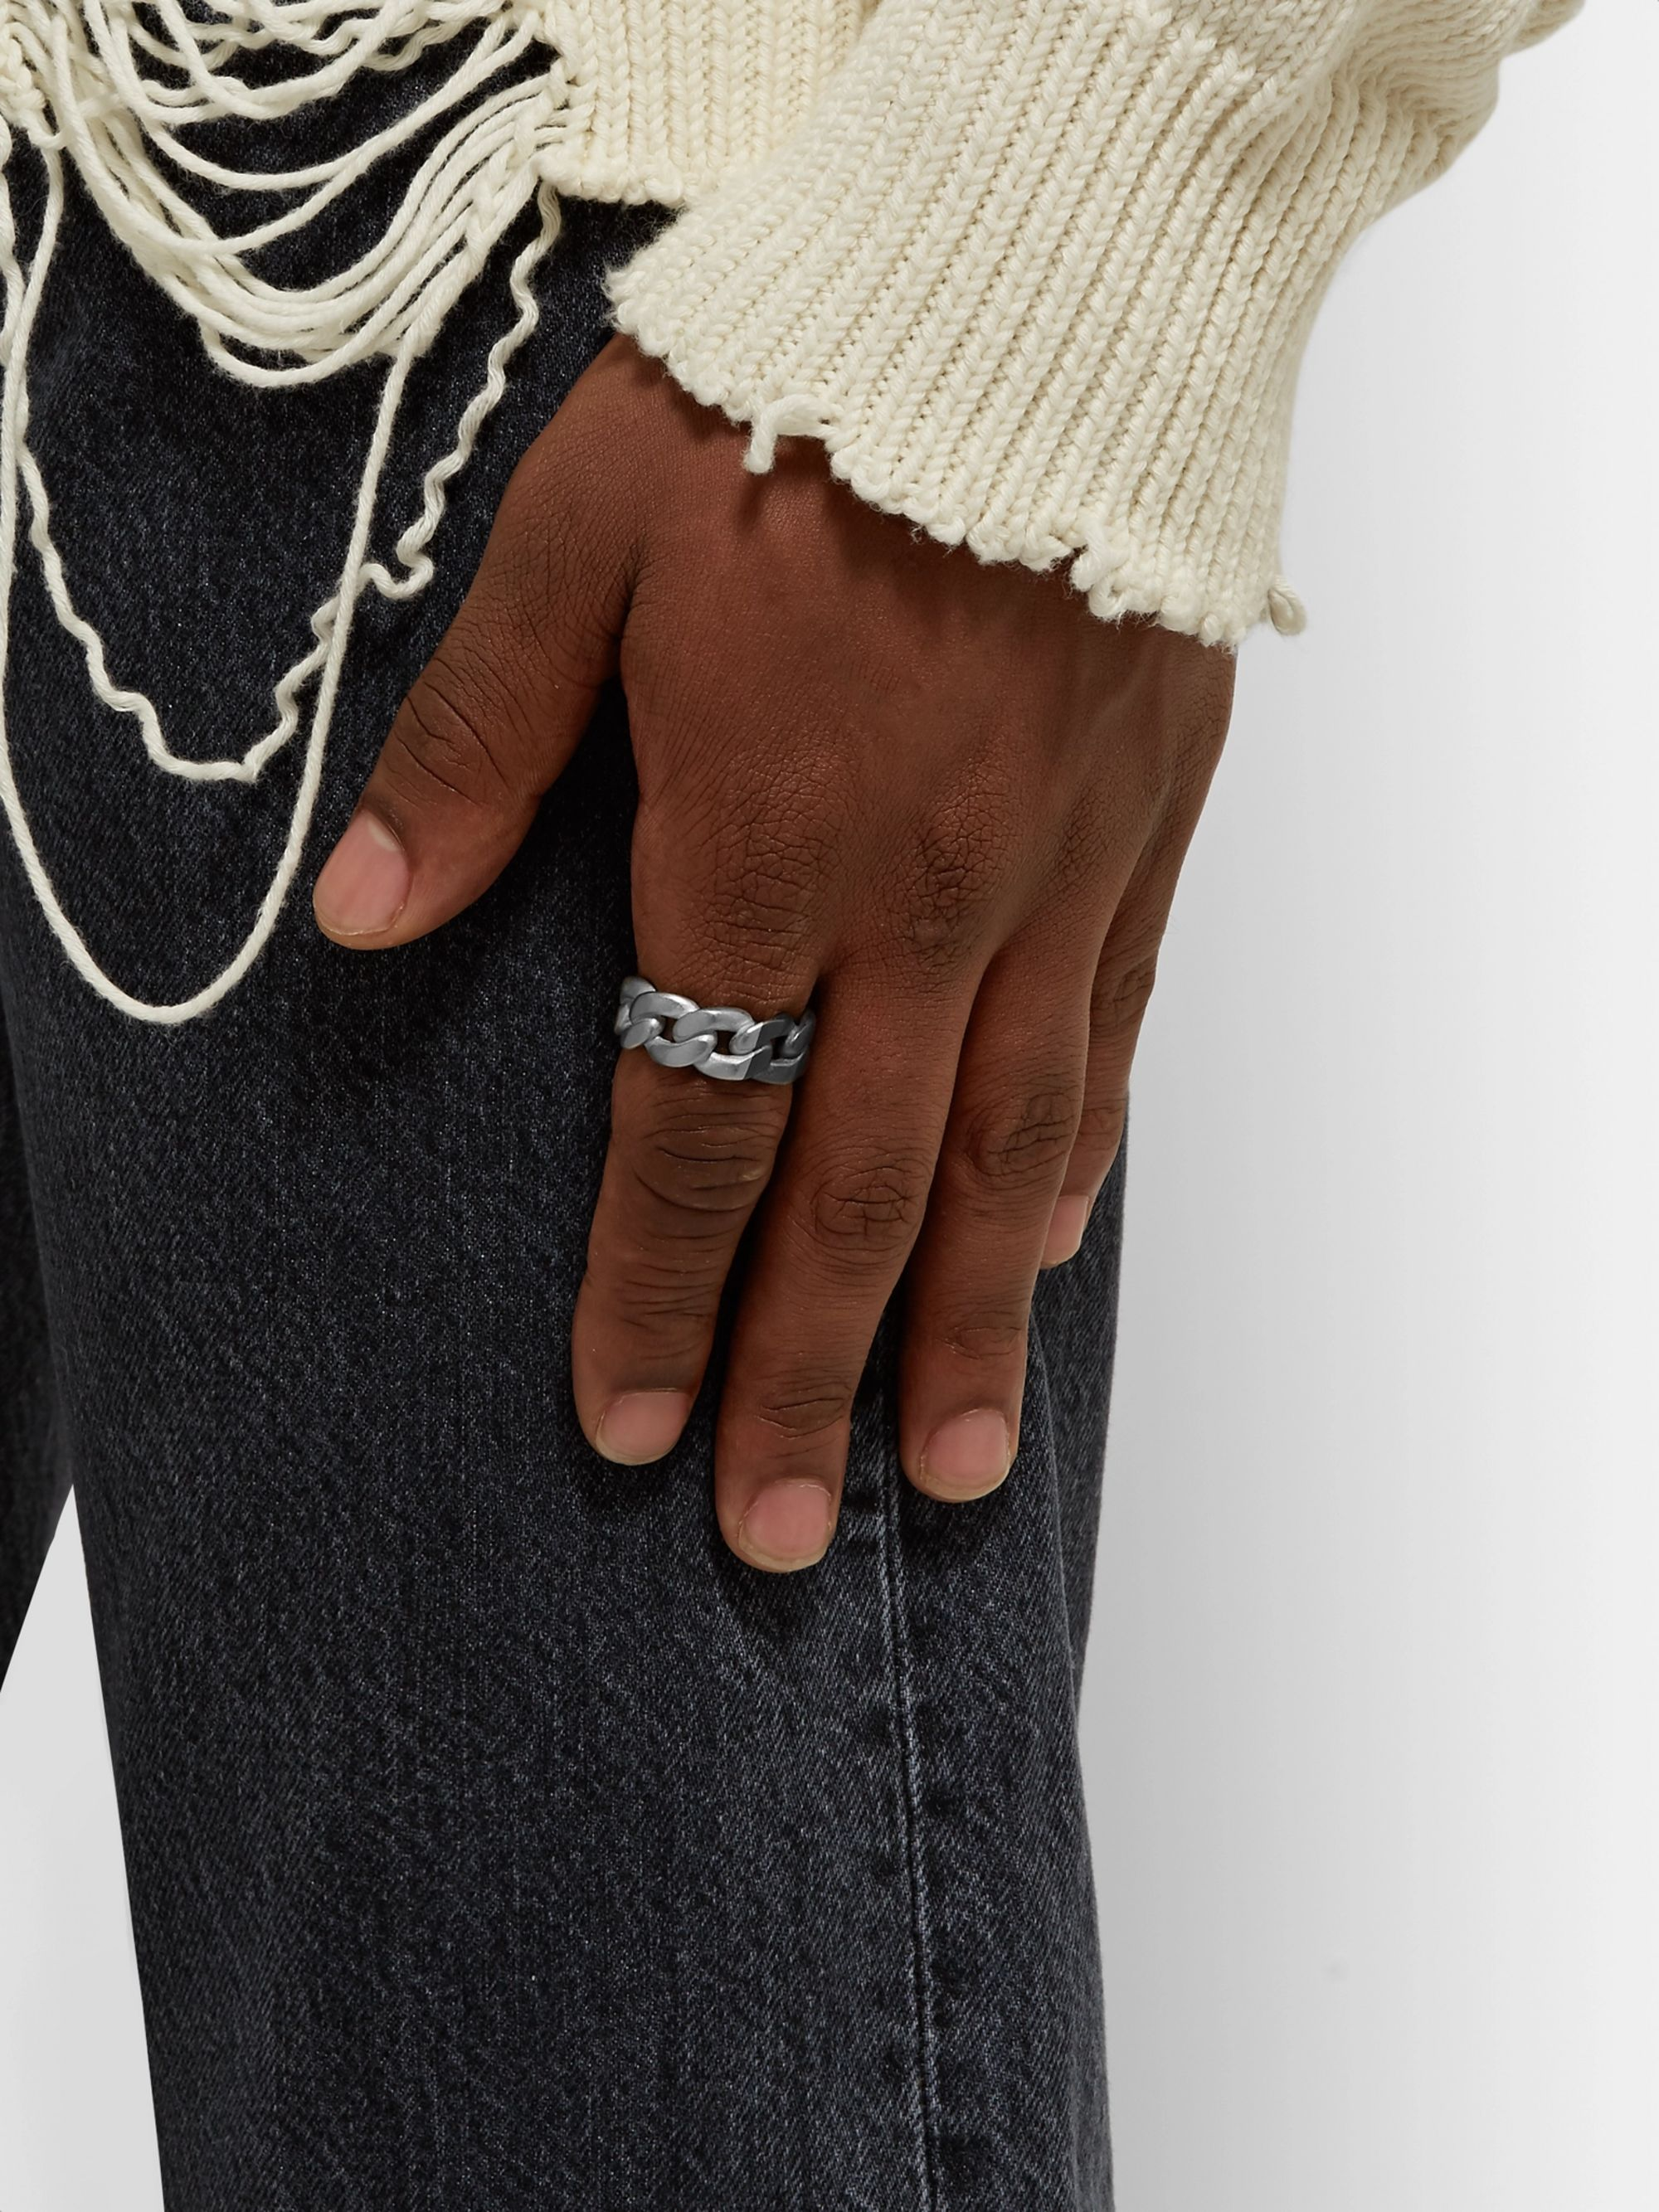 Maison Margiela Two-Tone Sterling Silver Chain Ring